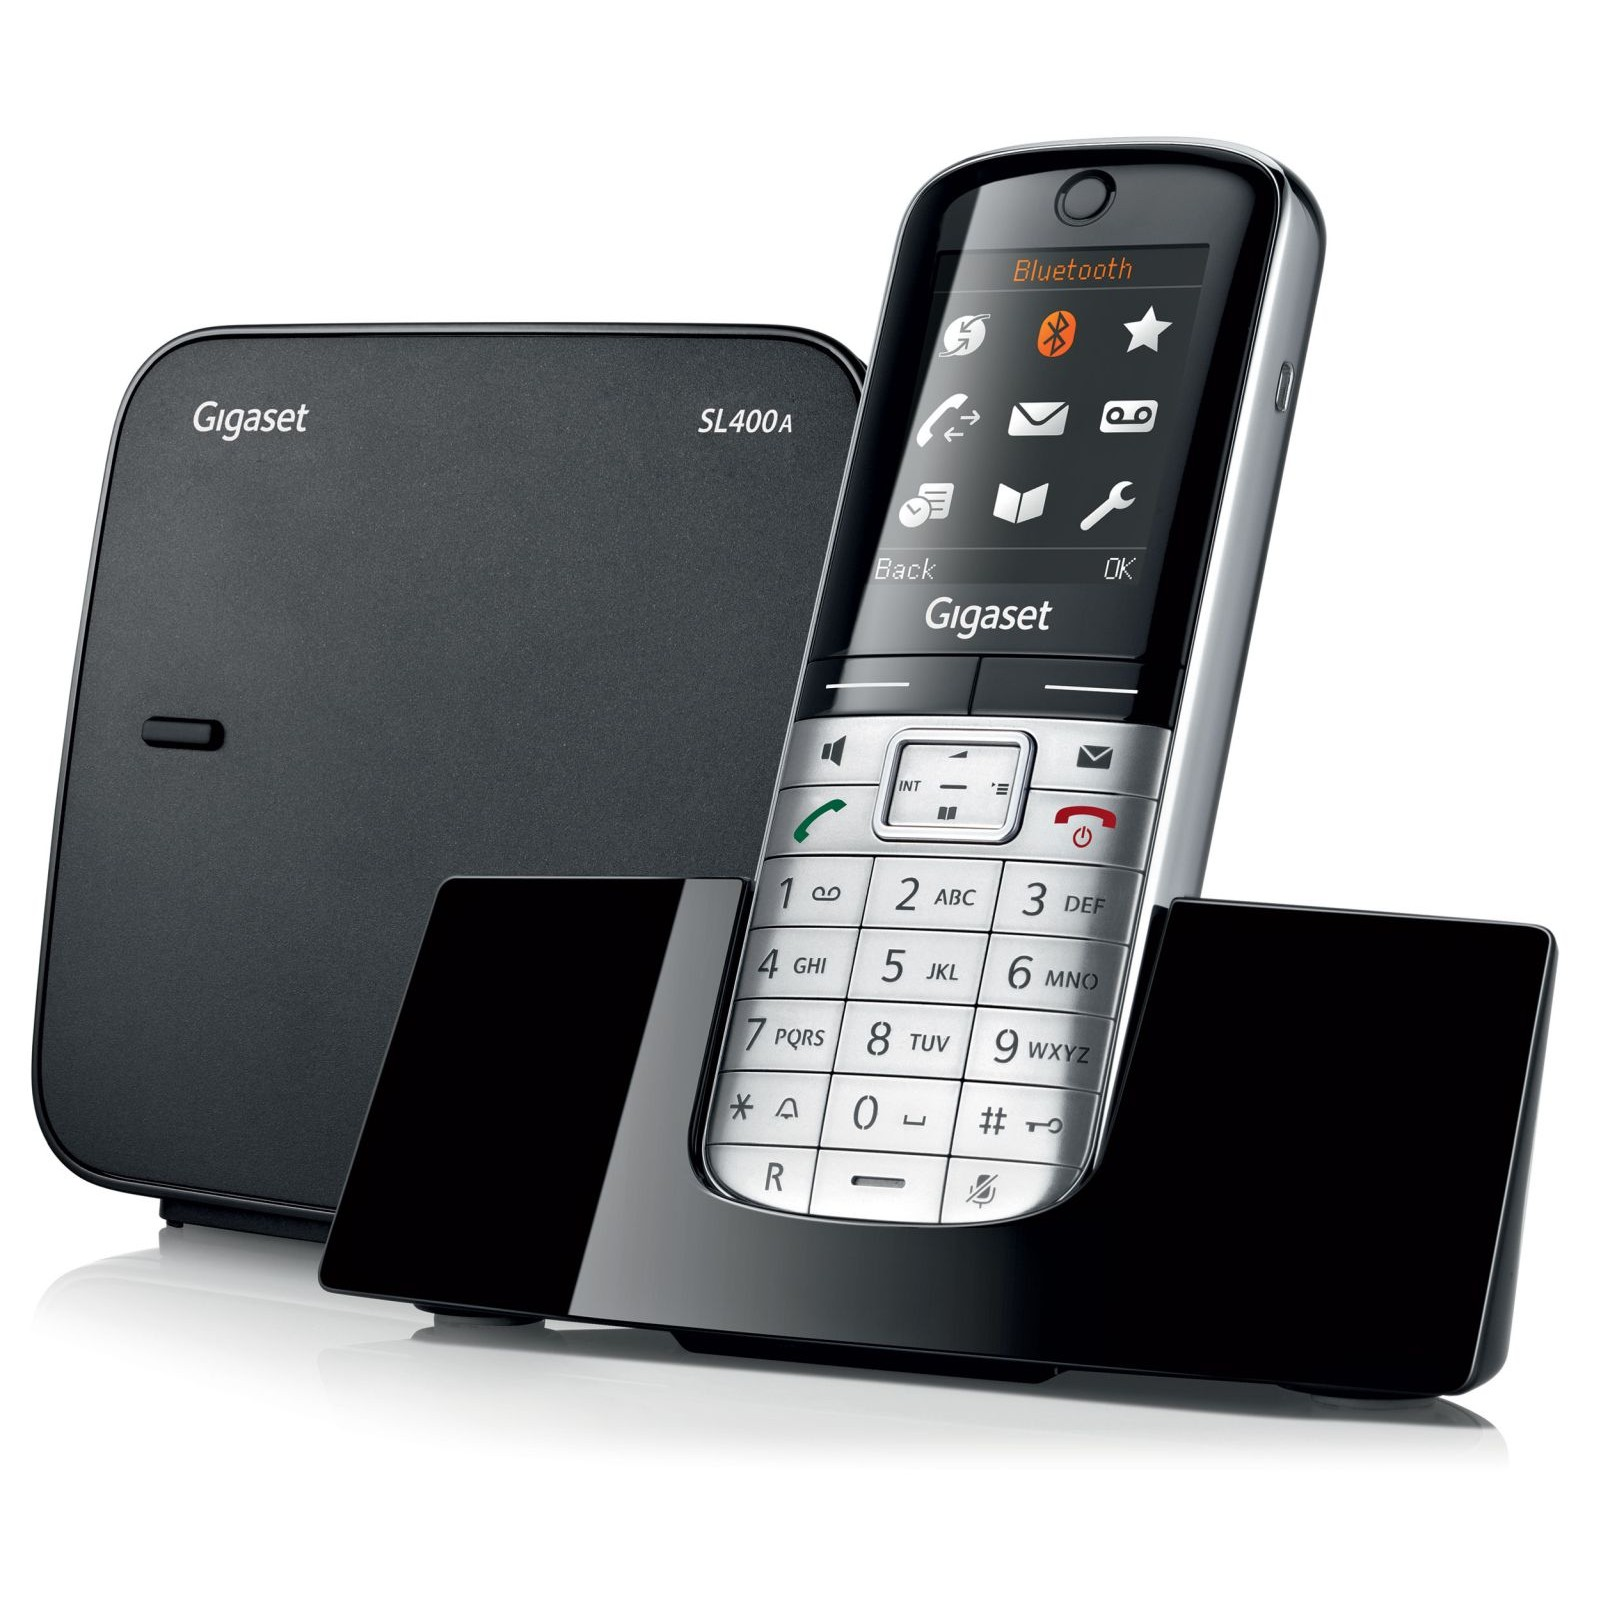 buy siemens gigaset sl400a cordless phone. Black Bedroom Furniture Sets. Home Design Ideas